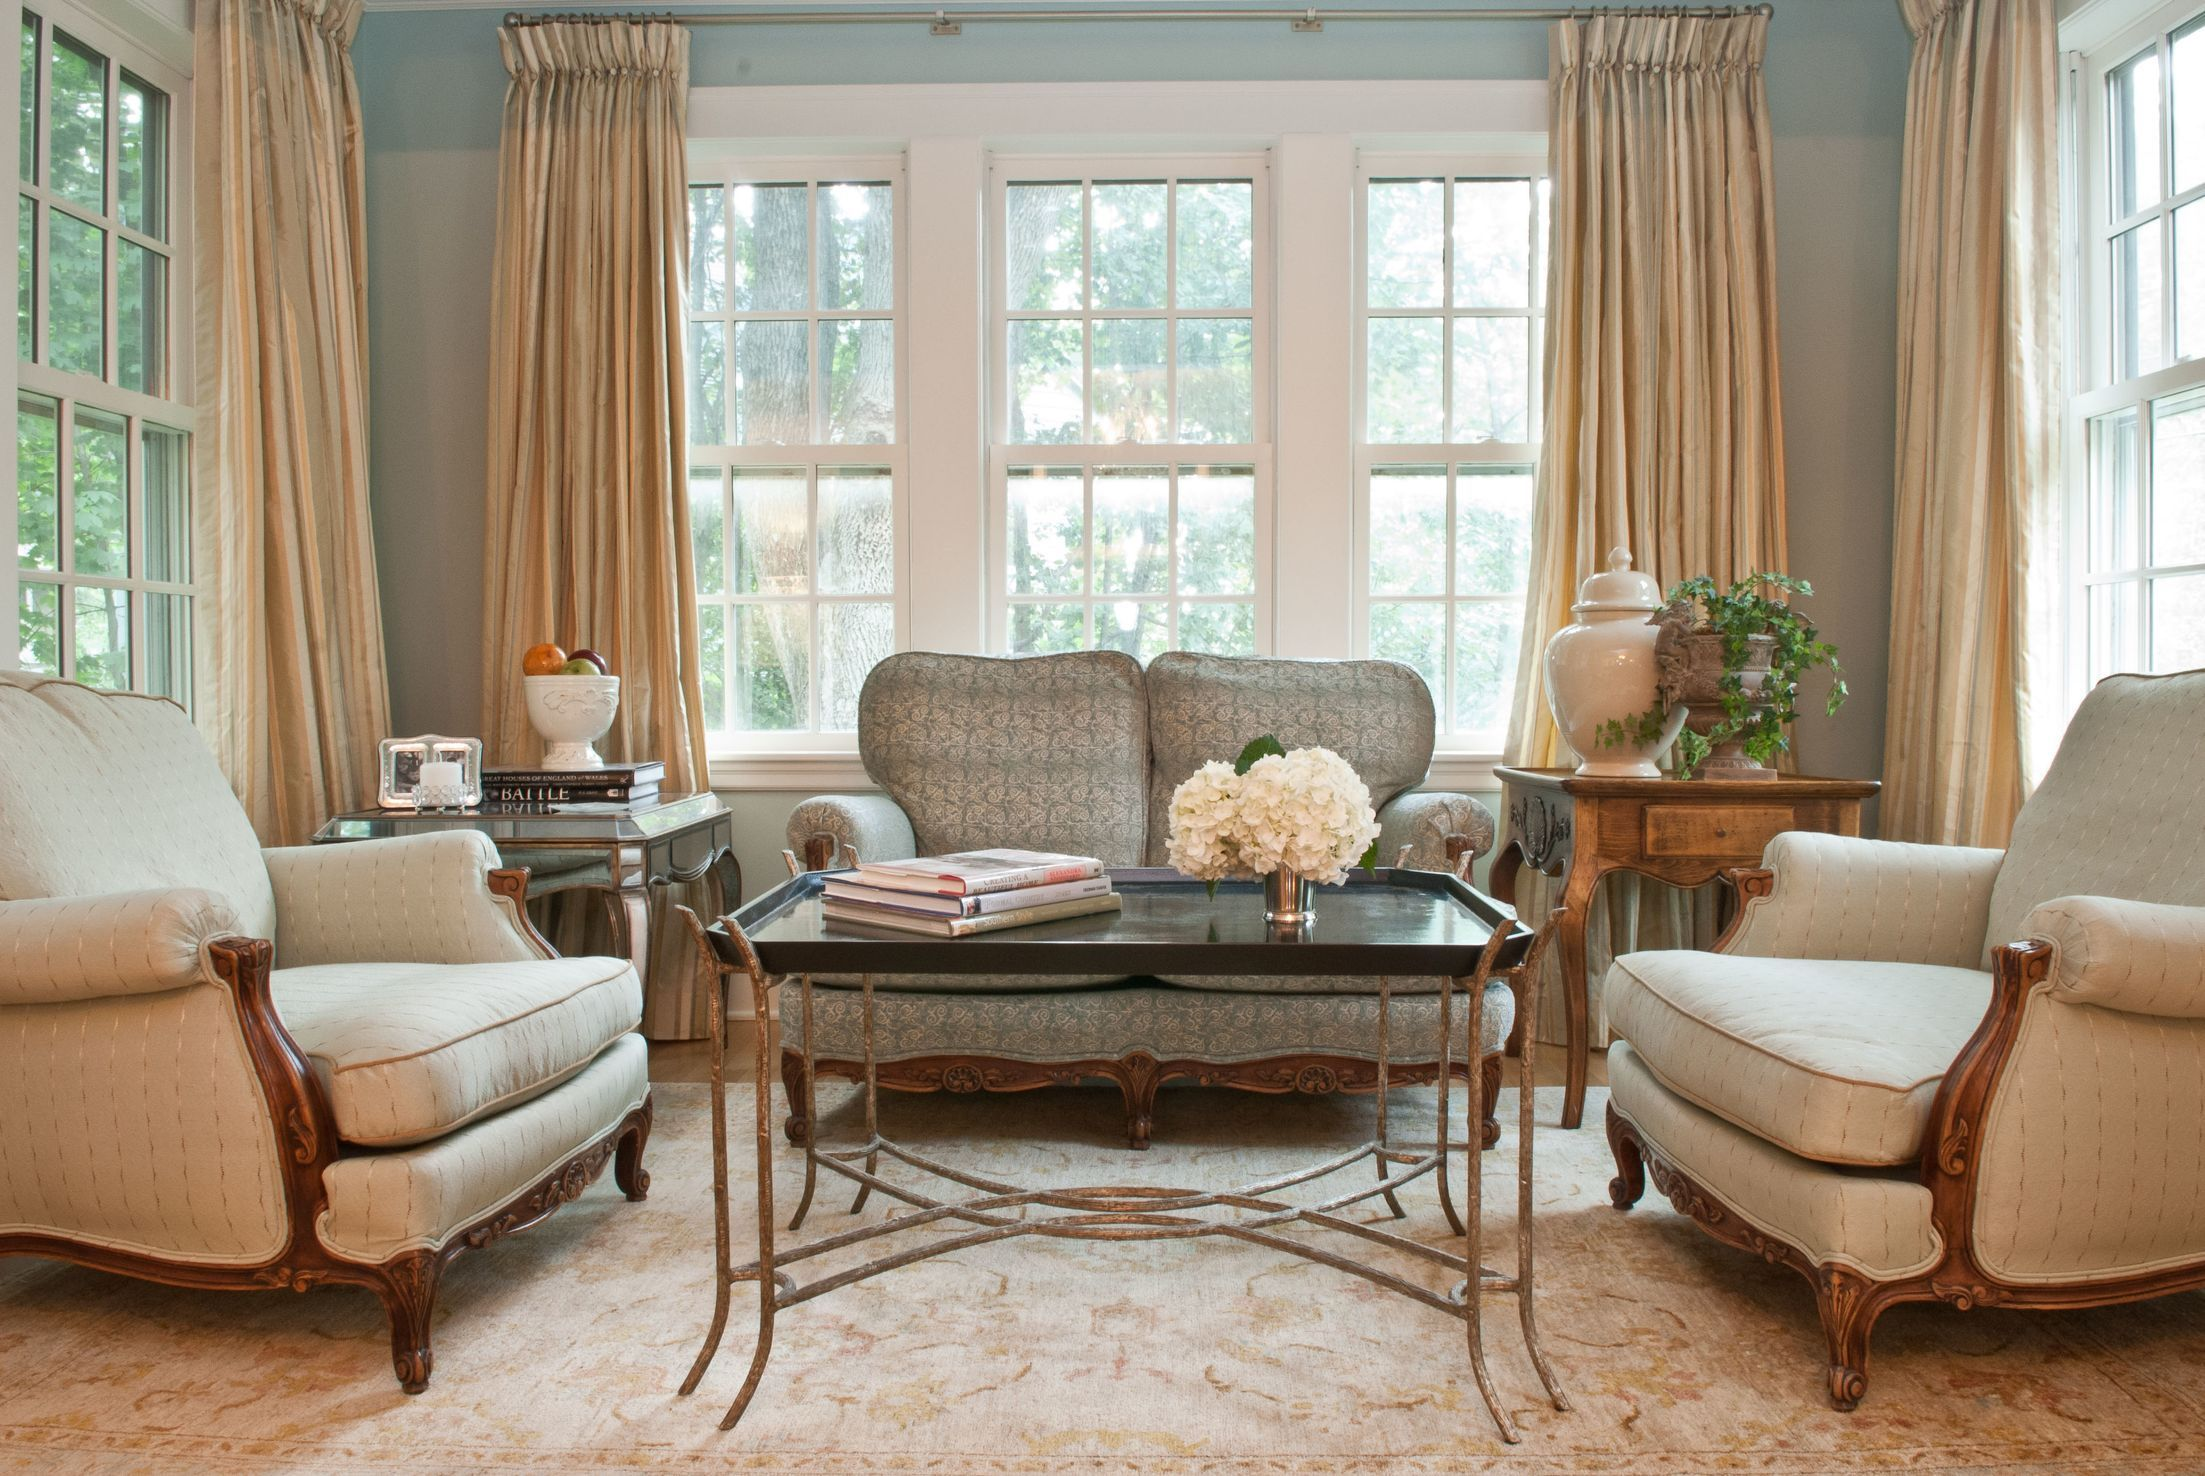 Waban Living Room  Traditional  Living Room  Imageslaurie Endearing Interior Design Living Room Traditional Design Ideas